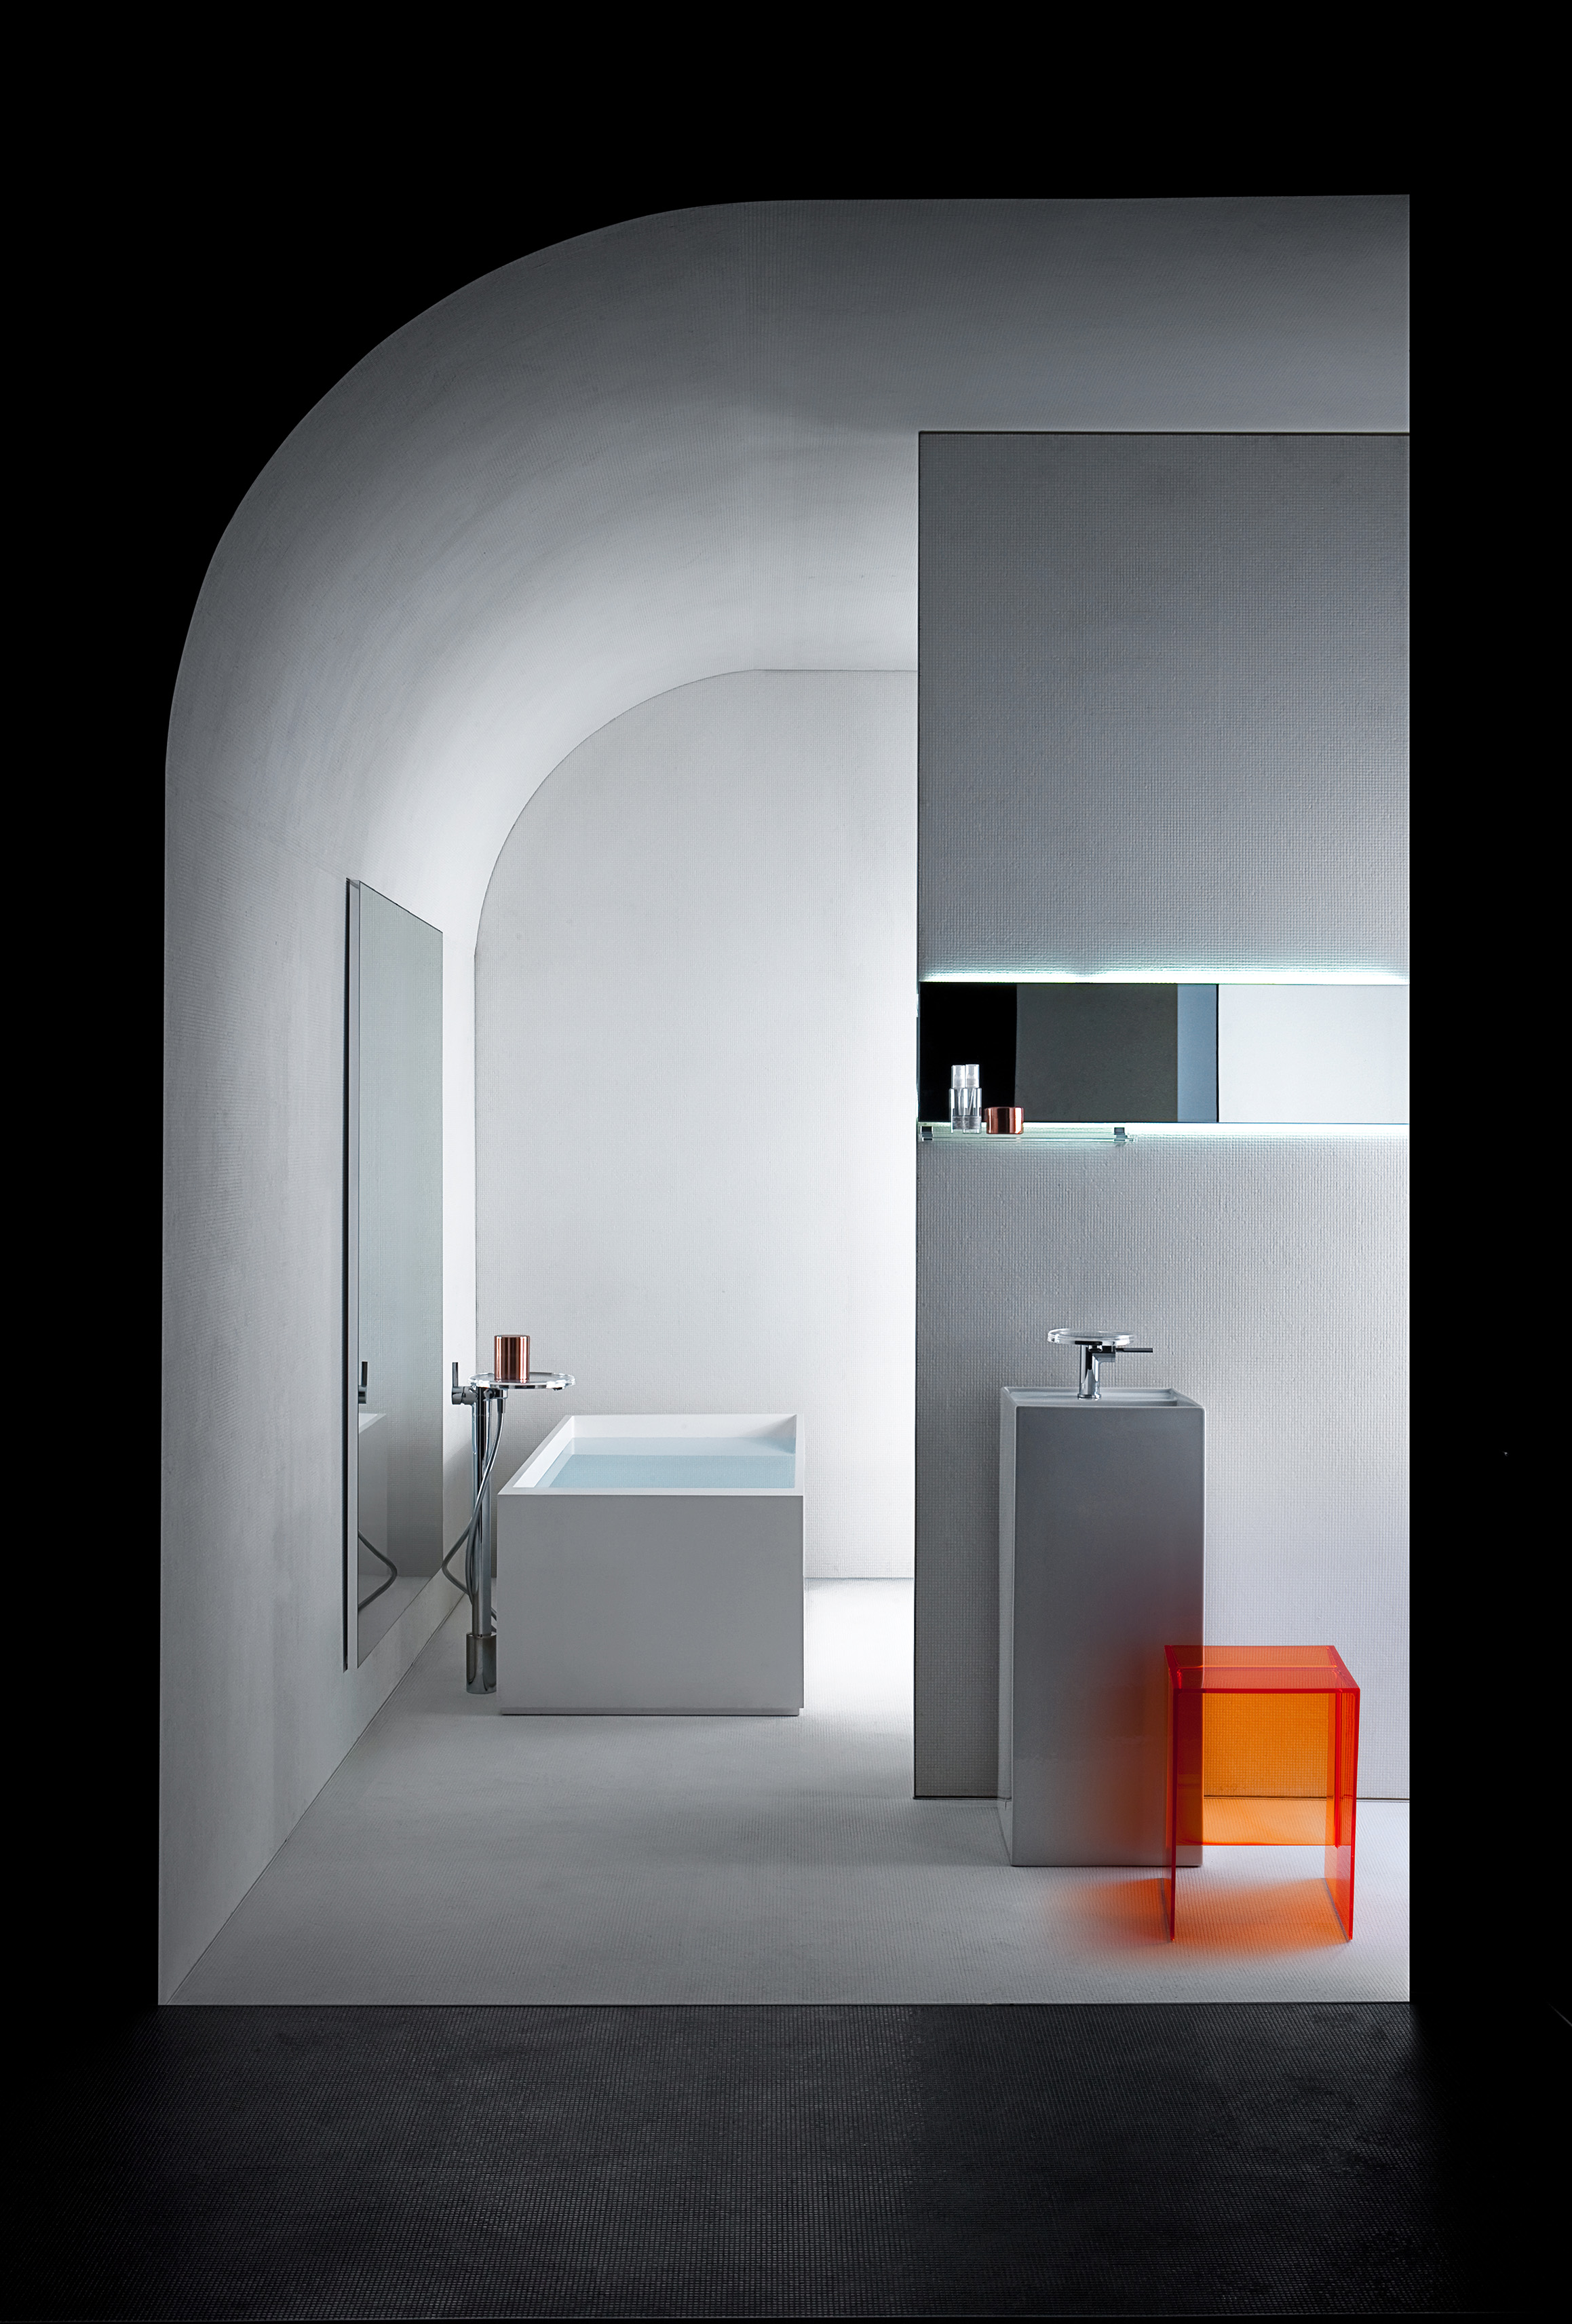 13_Kartell-by-Laufen-ambience.jpg